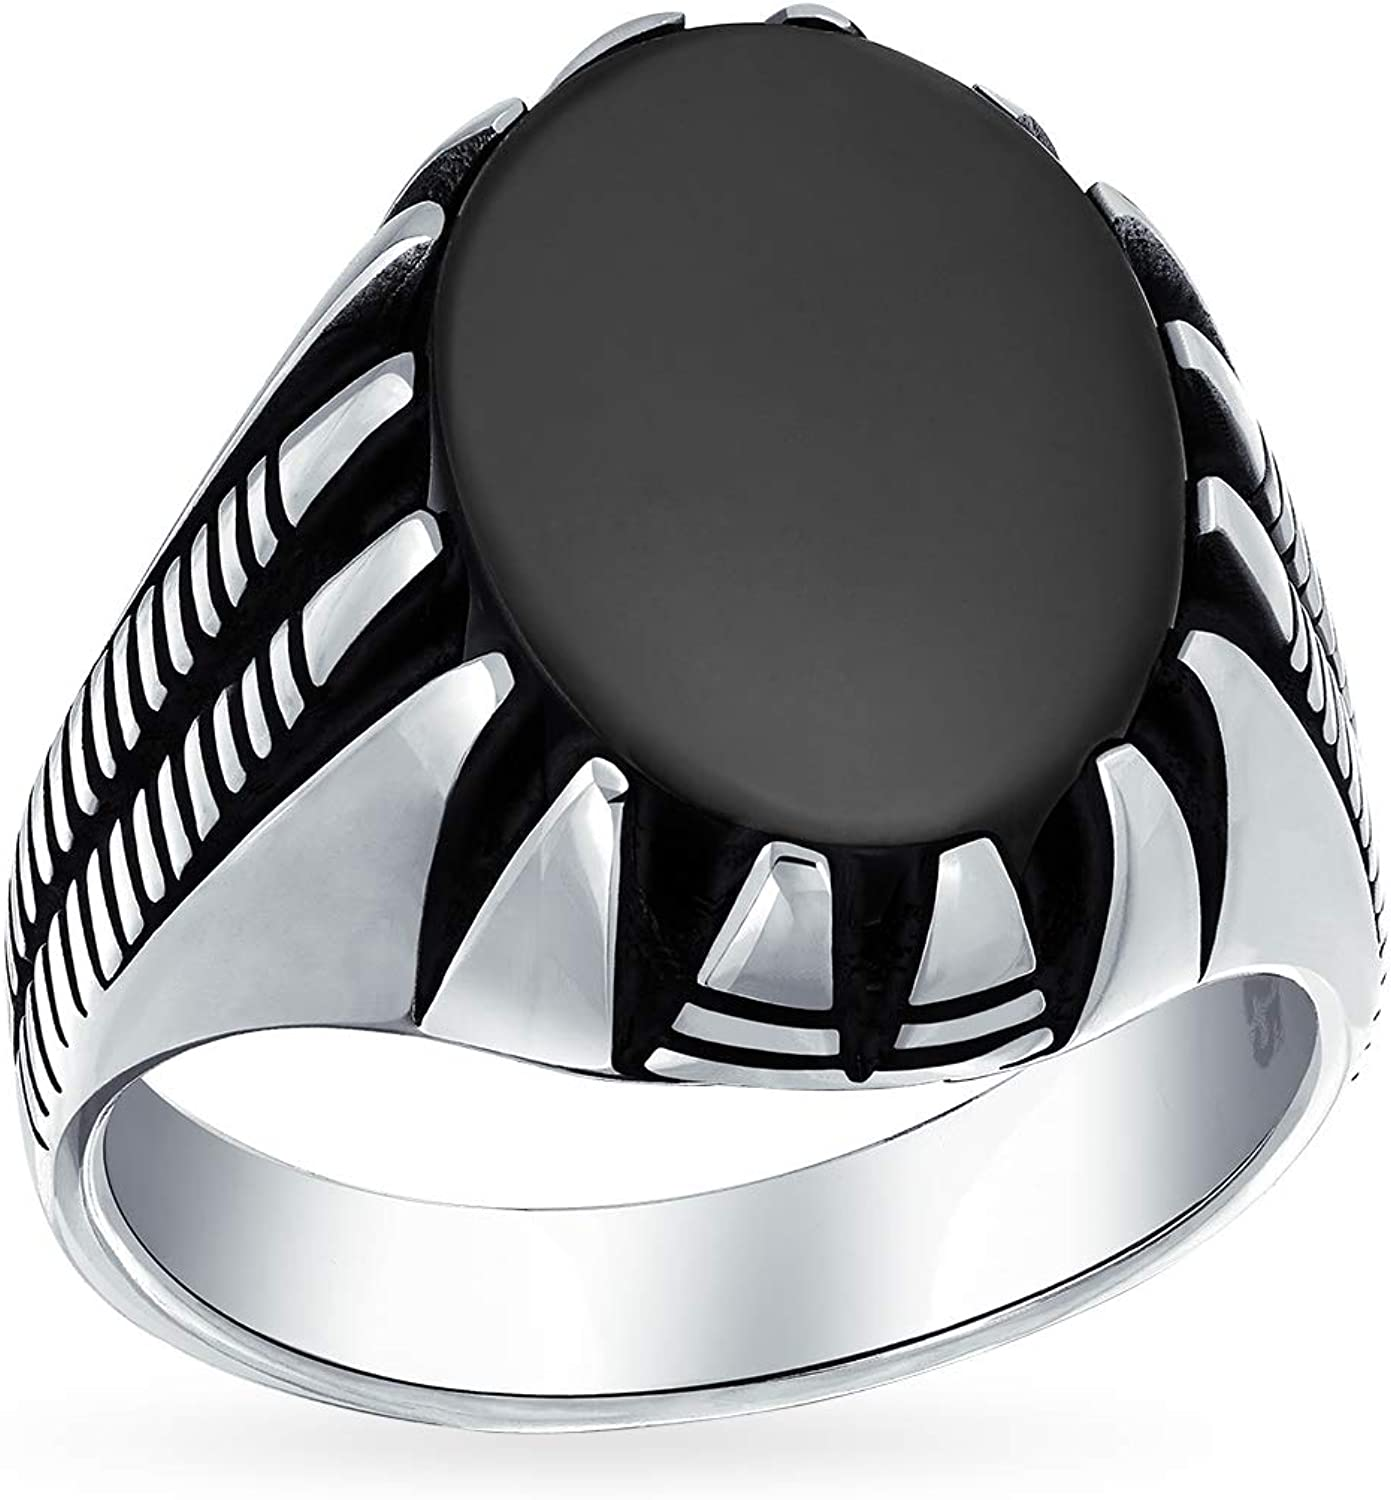 Mens Claw Set Large Oval Cabochon Semi Precious Gemstones Signet Ring For Men Solid Oxidized 925 Silver Handmade In Turkey